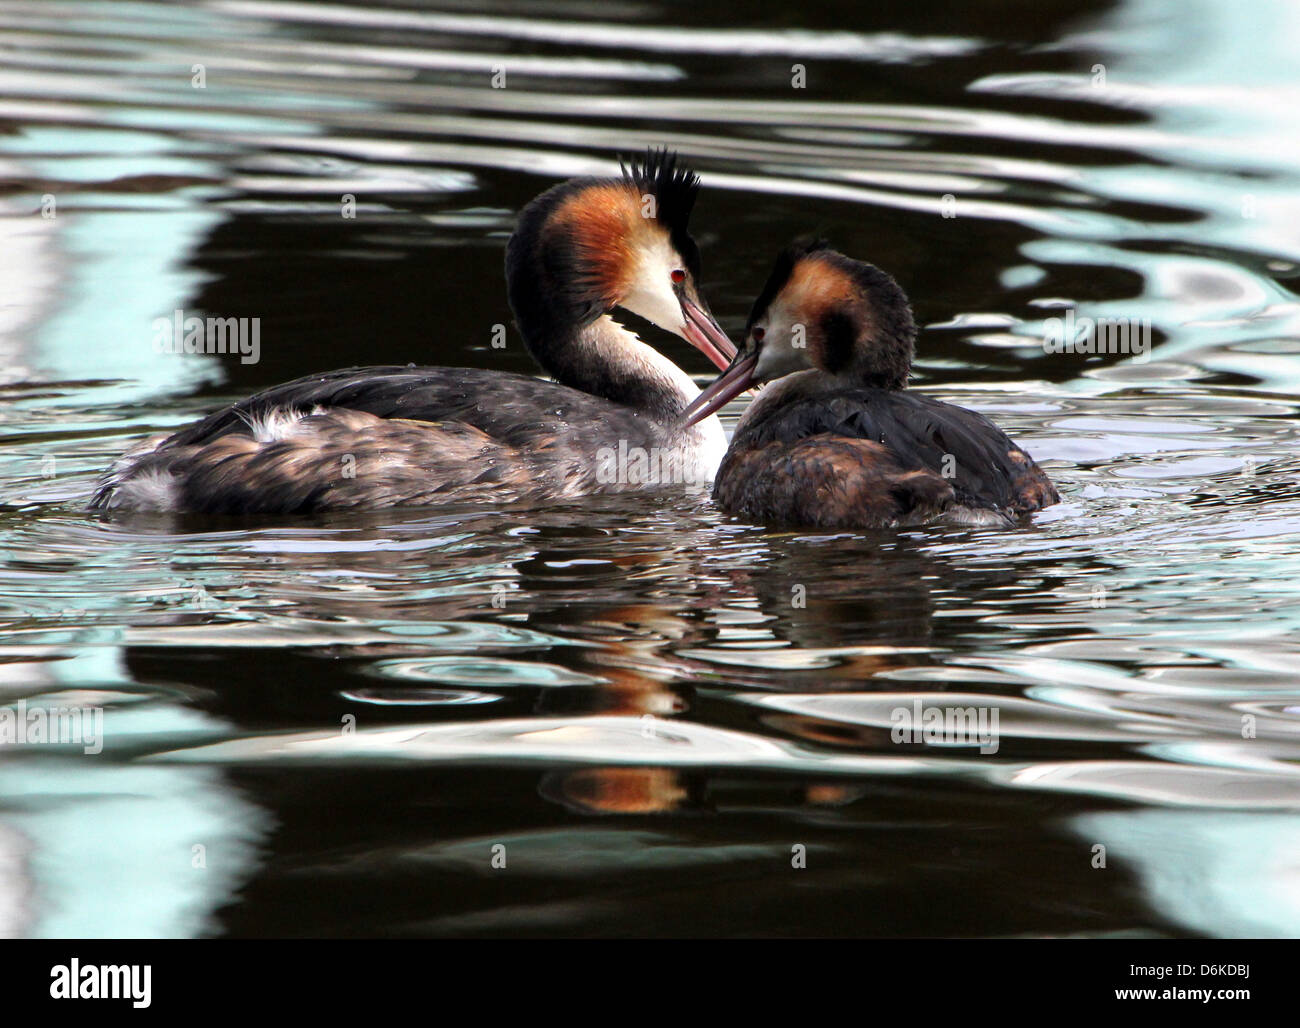 Couple of  swimming adult Great Crested Grebes (Podiceps cristatus) in breeding plumage - Stock Image